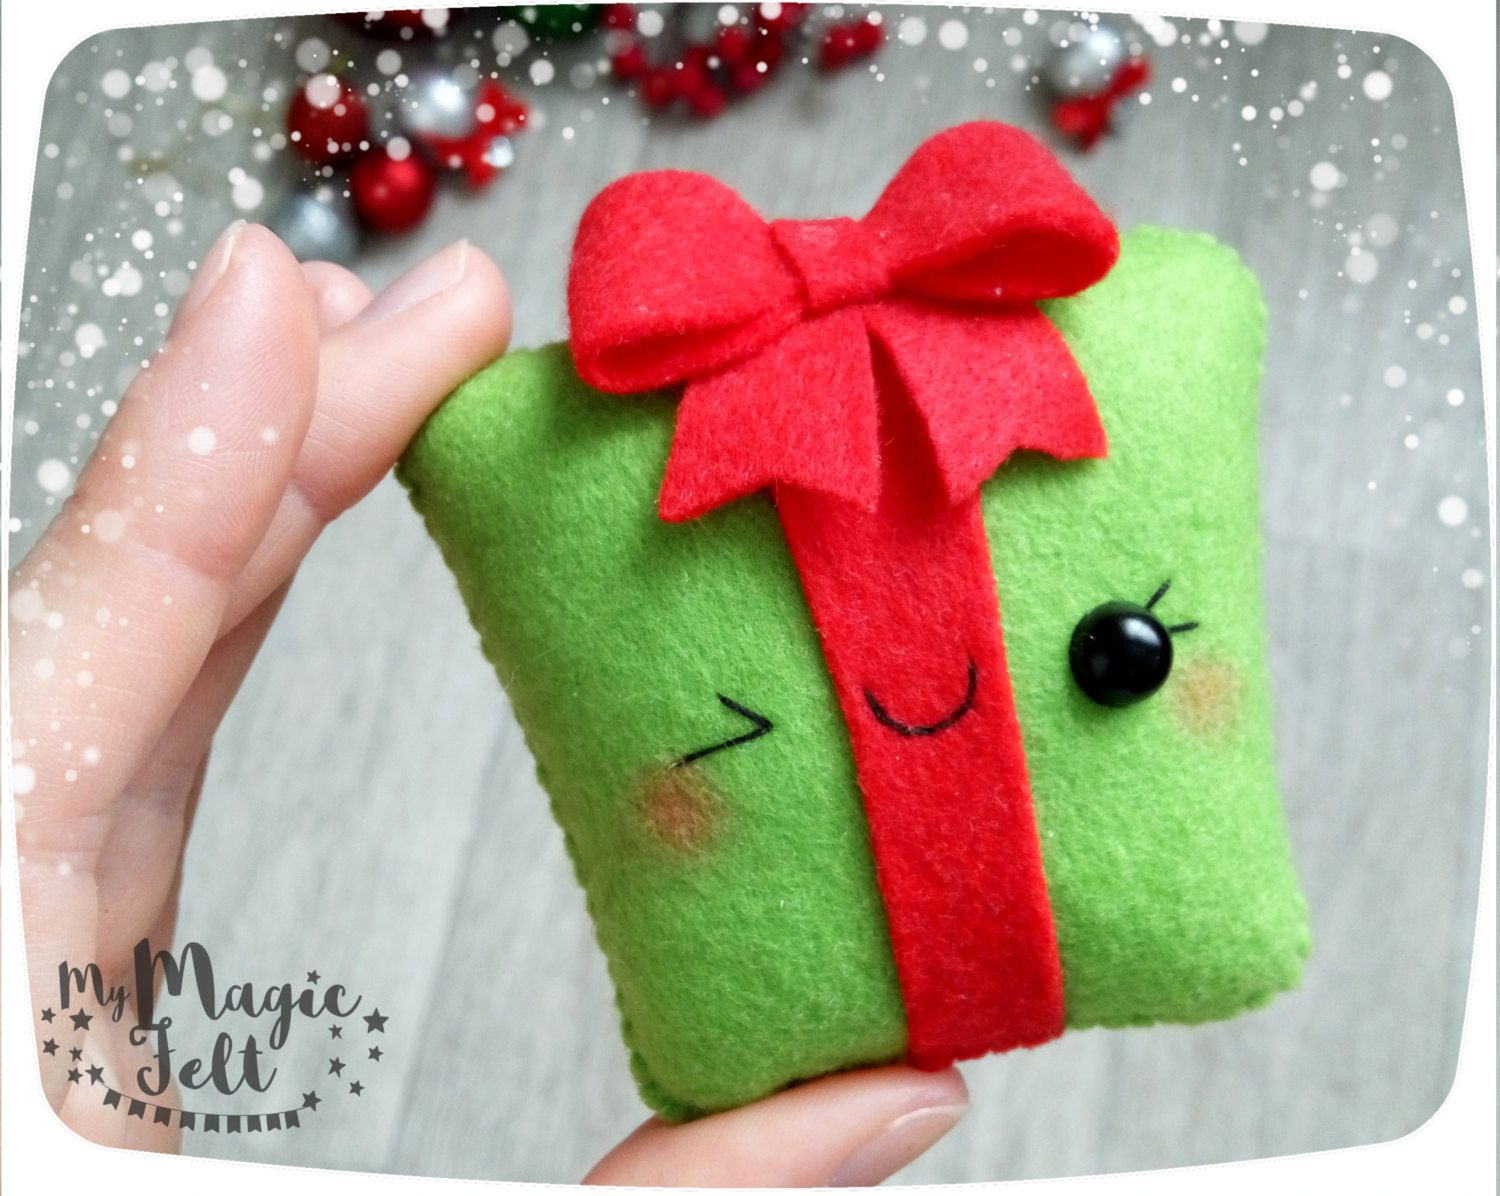 Gift Box Christmas Decorations Christmas Ornaments Felt Gift Box Ornament For Christmas Tree Cute